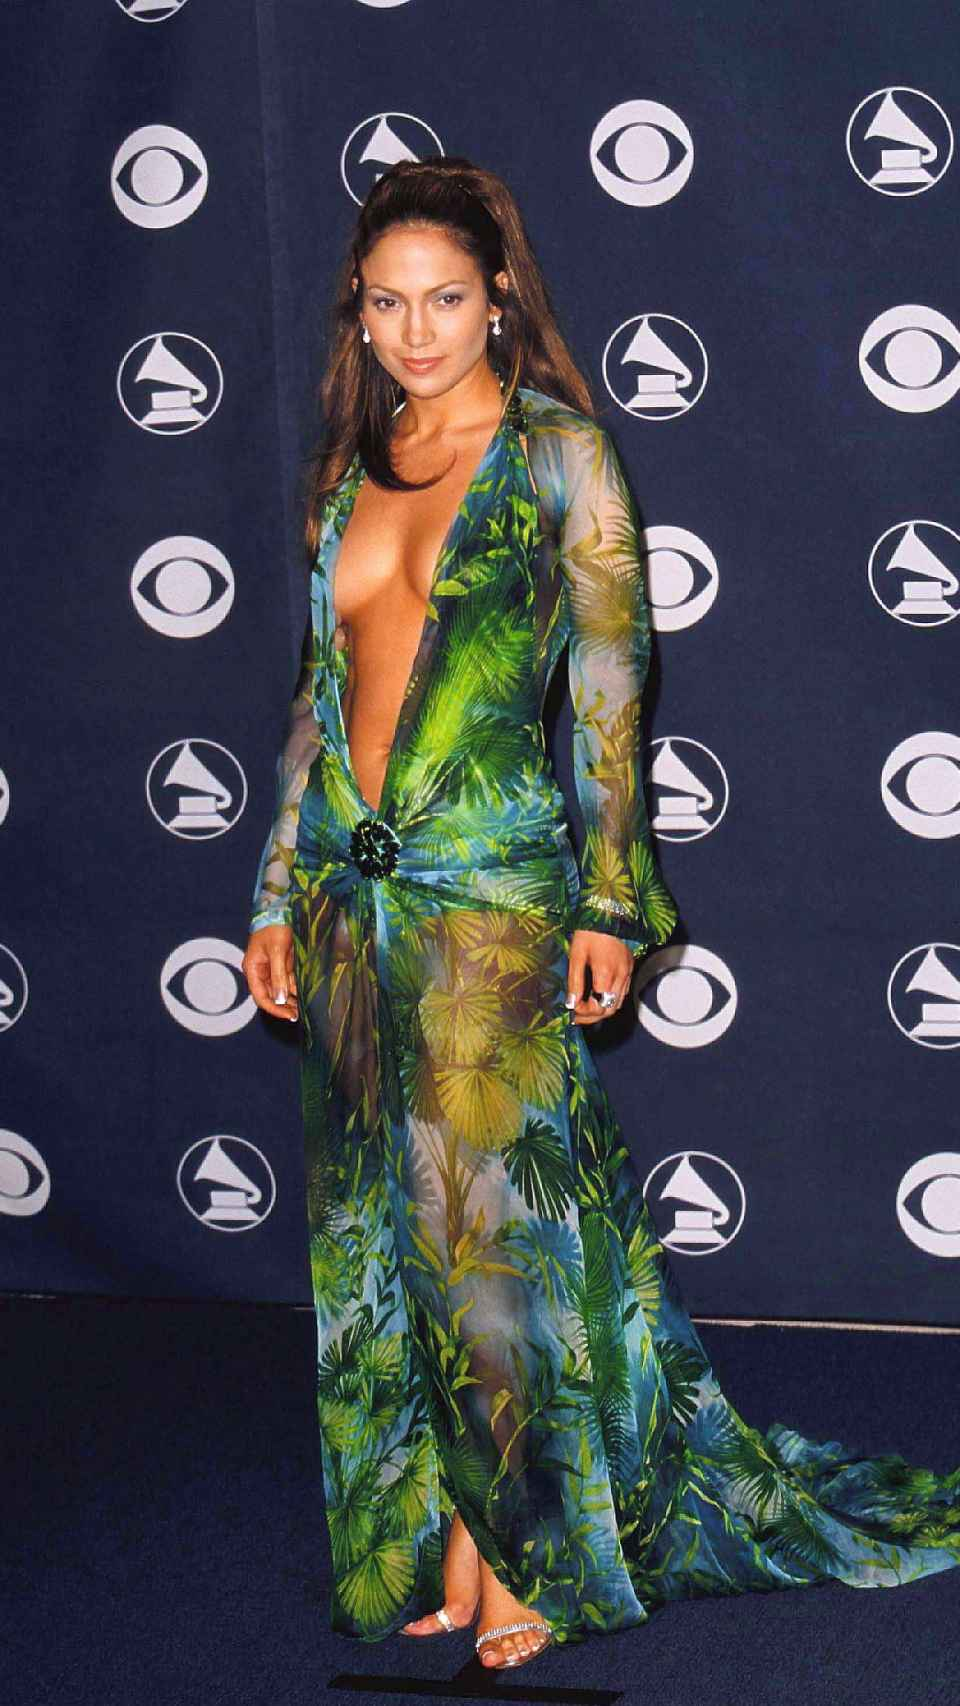 This is how Jennifer Lopez wore the dress at the 2000 Grammy Awards.